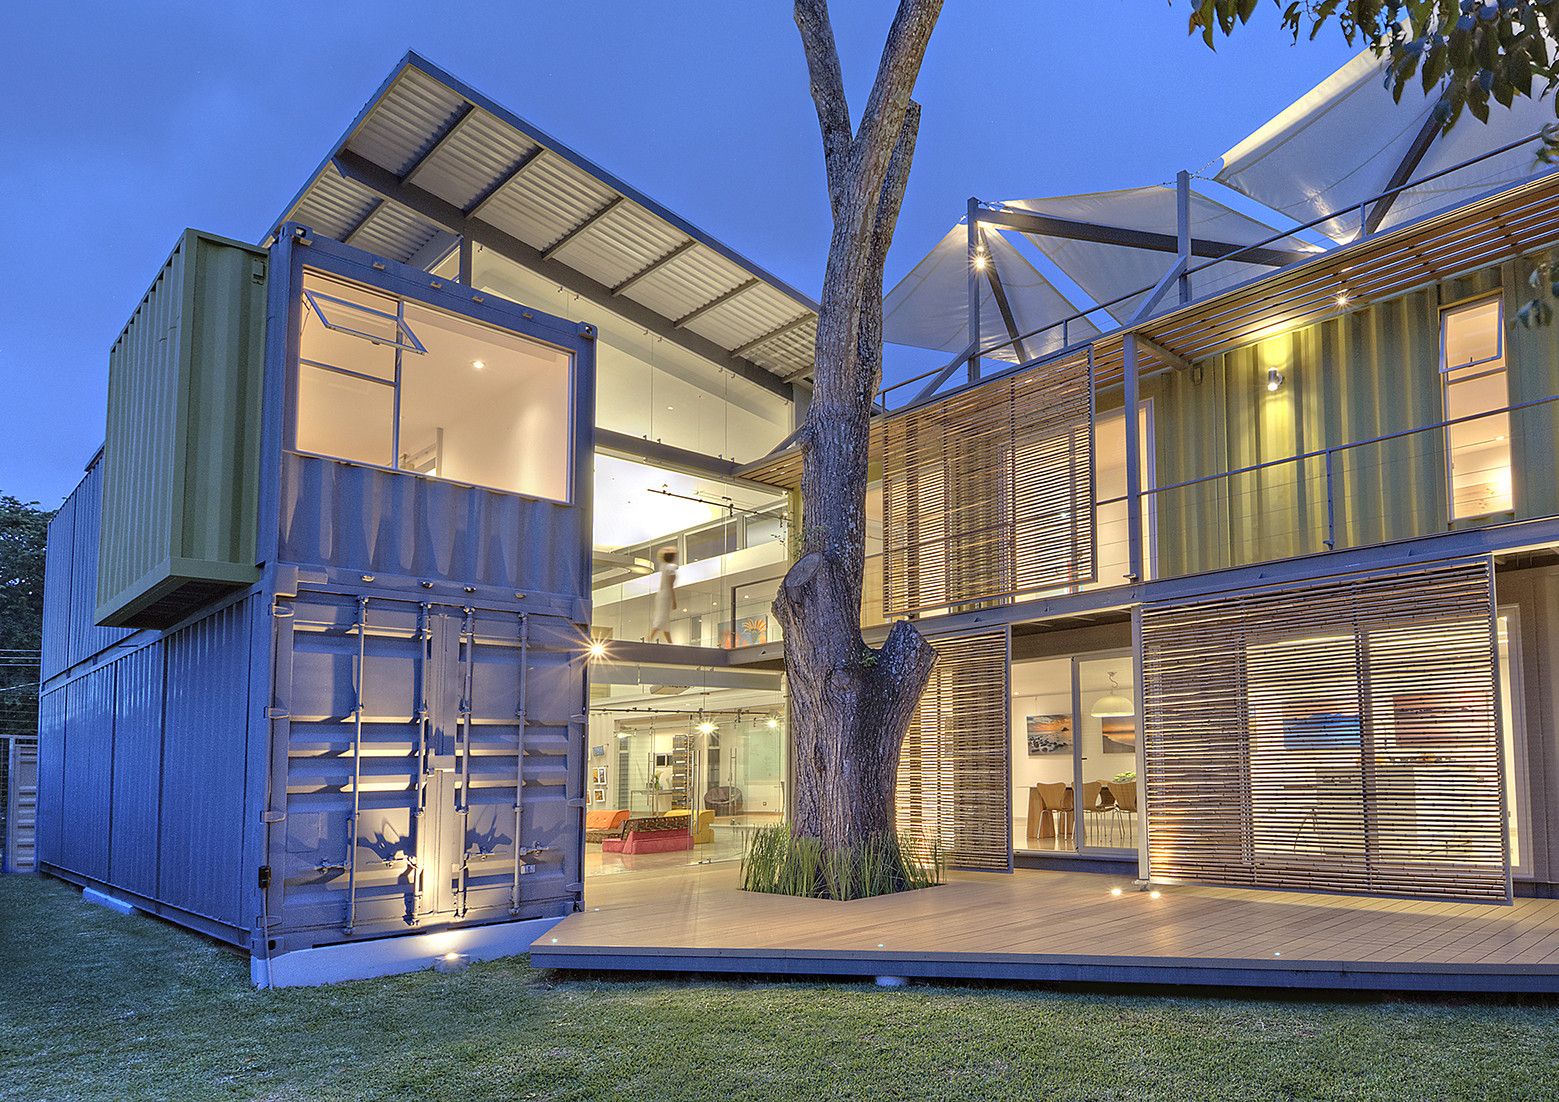 Sea Container Home Designs 11 Tips You Need To Know Before Building A Shipping Container Home .